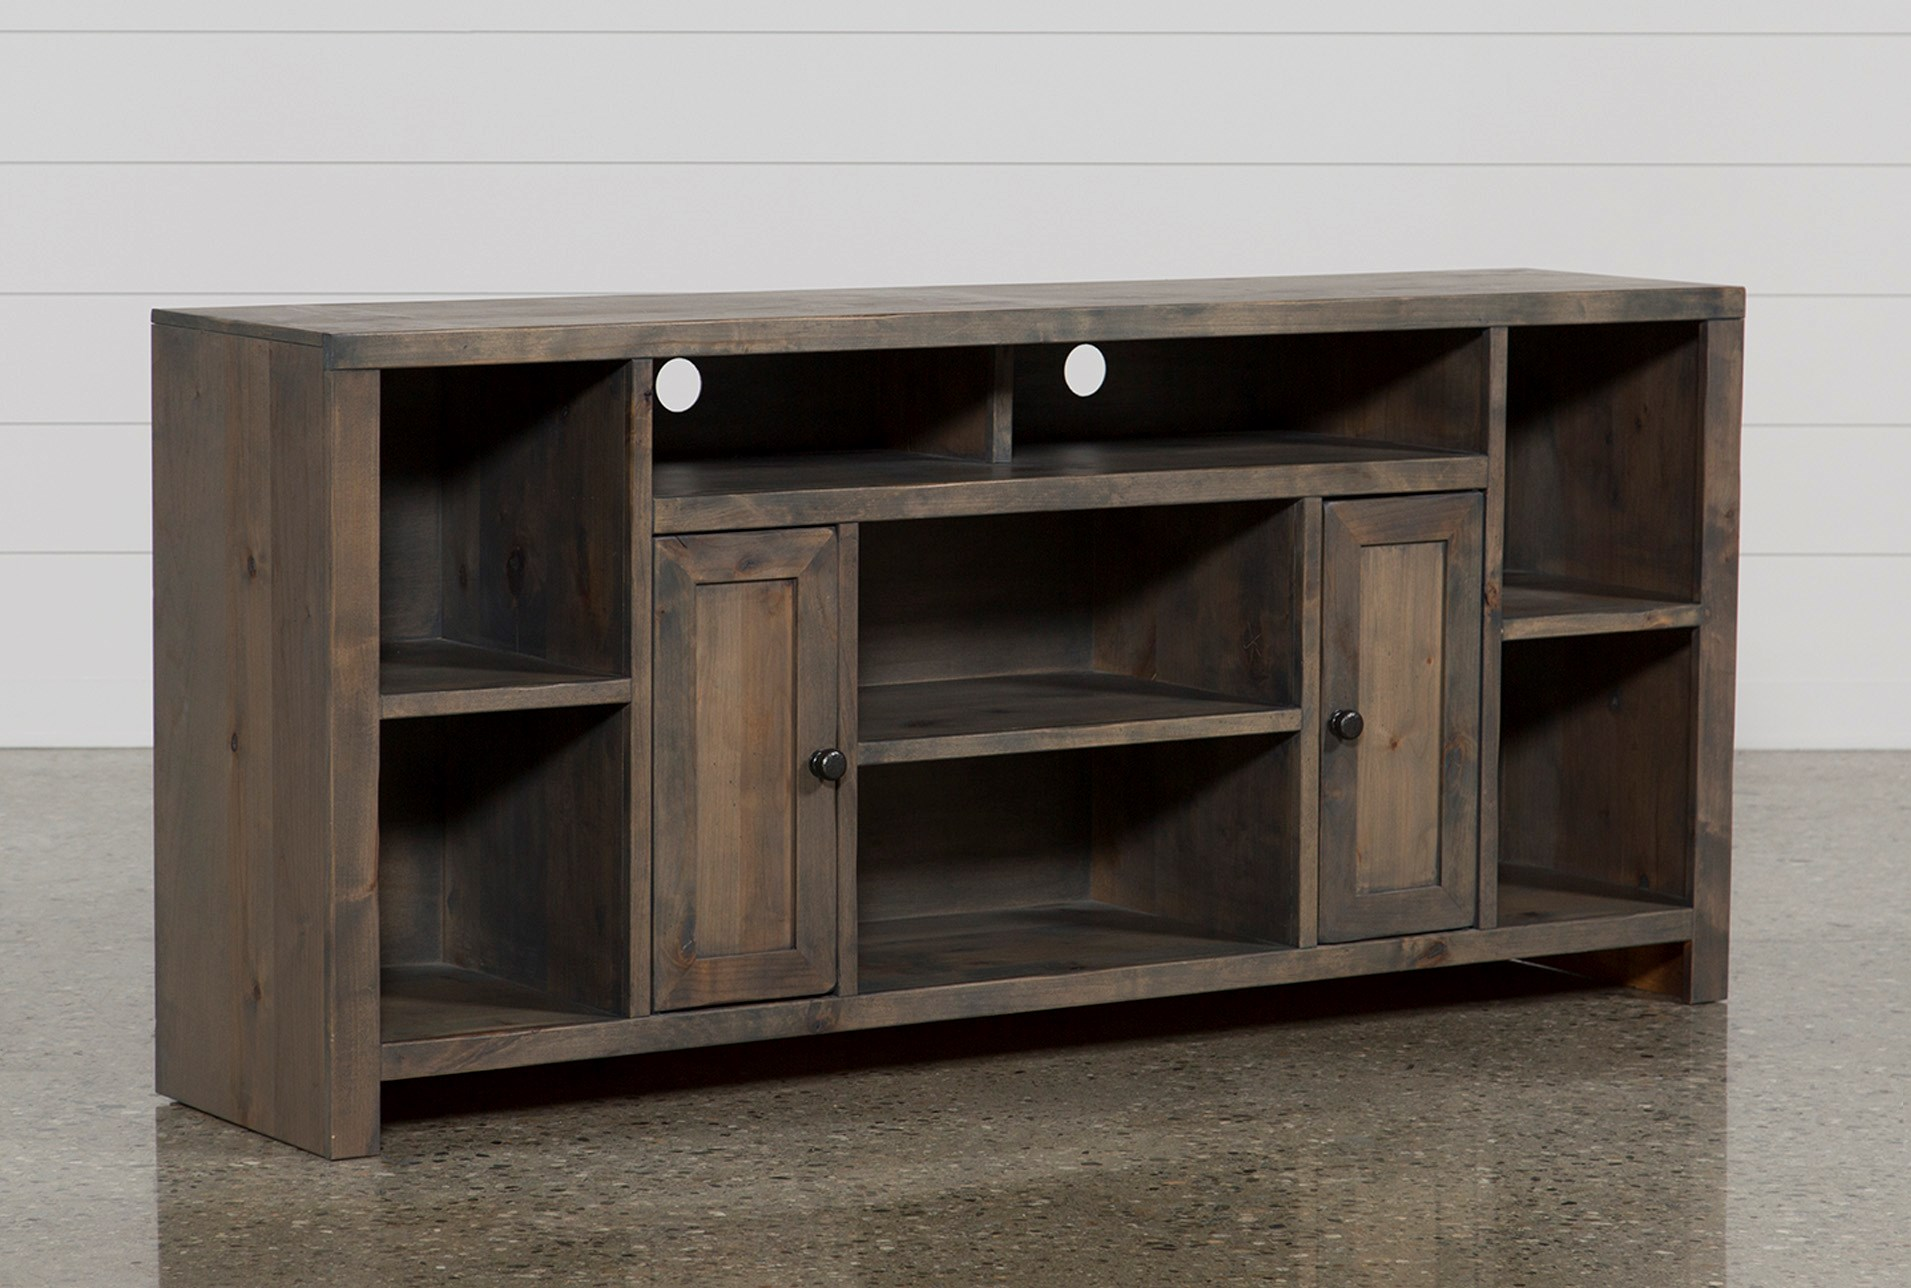 Living Spaces Tv Stand : Ducar 75 Inch TV Stand  Living Spaces